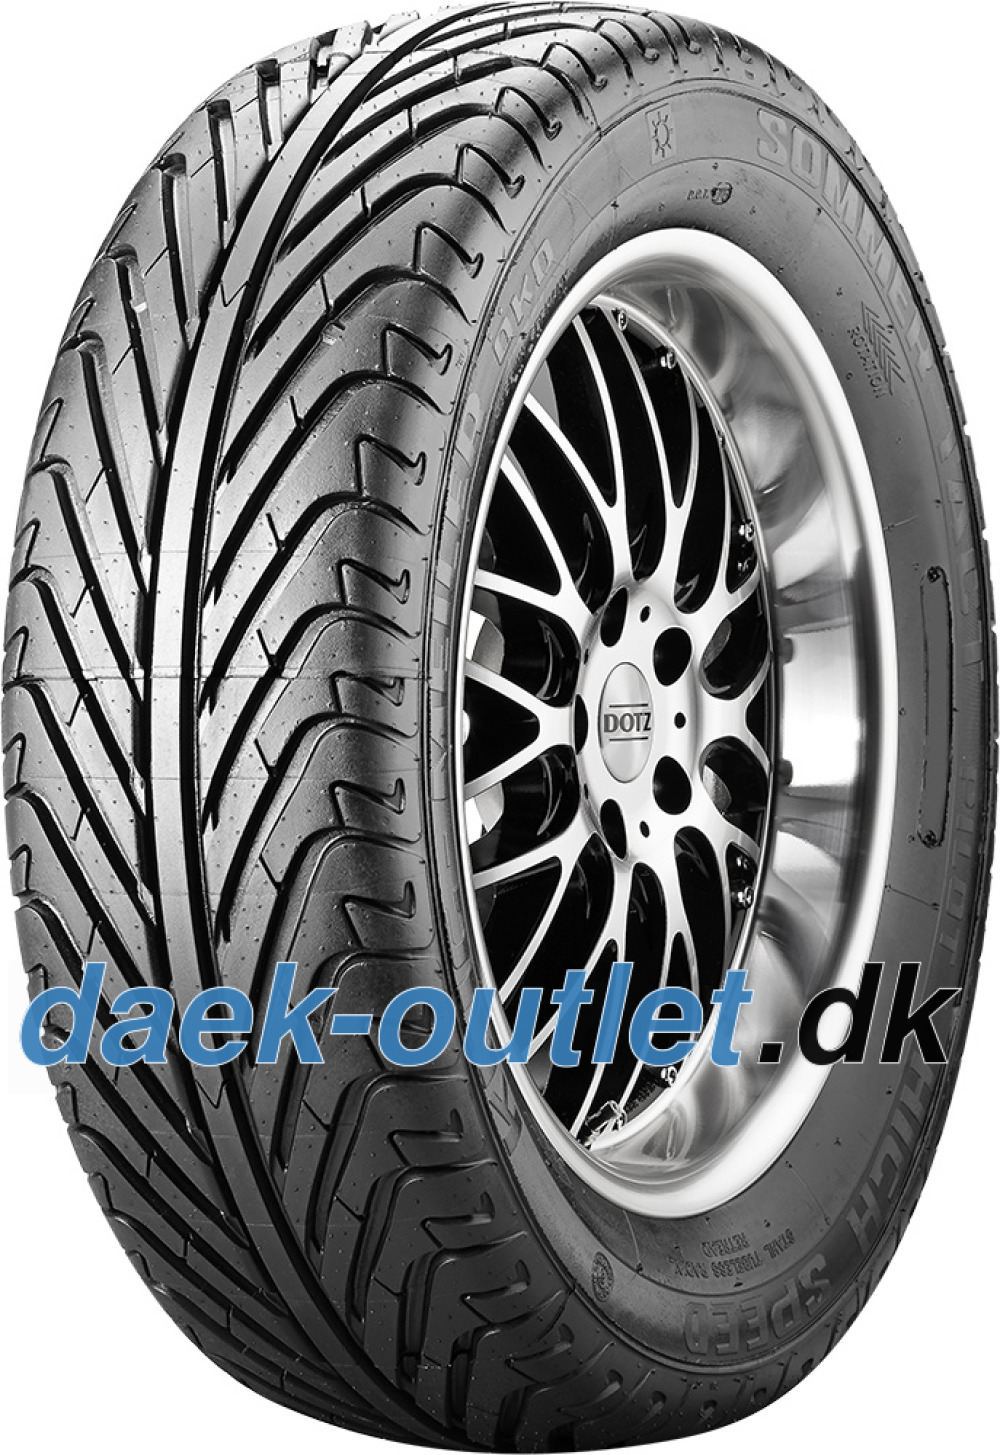 King Meiler ÖKO ( 185/55 R15 86H XL totalt fornyet )